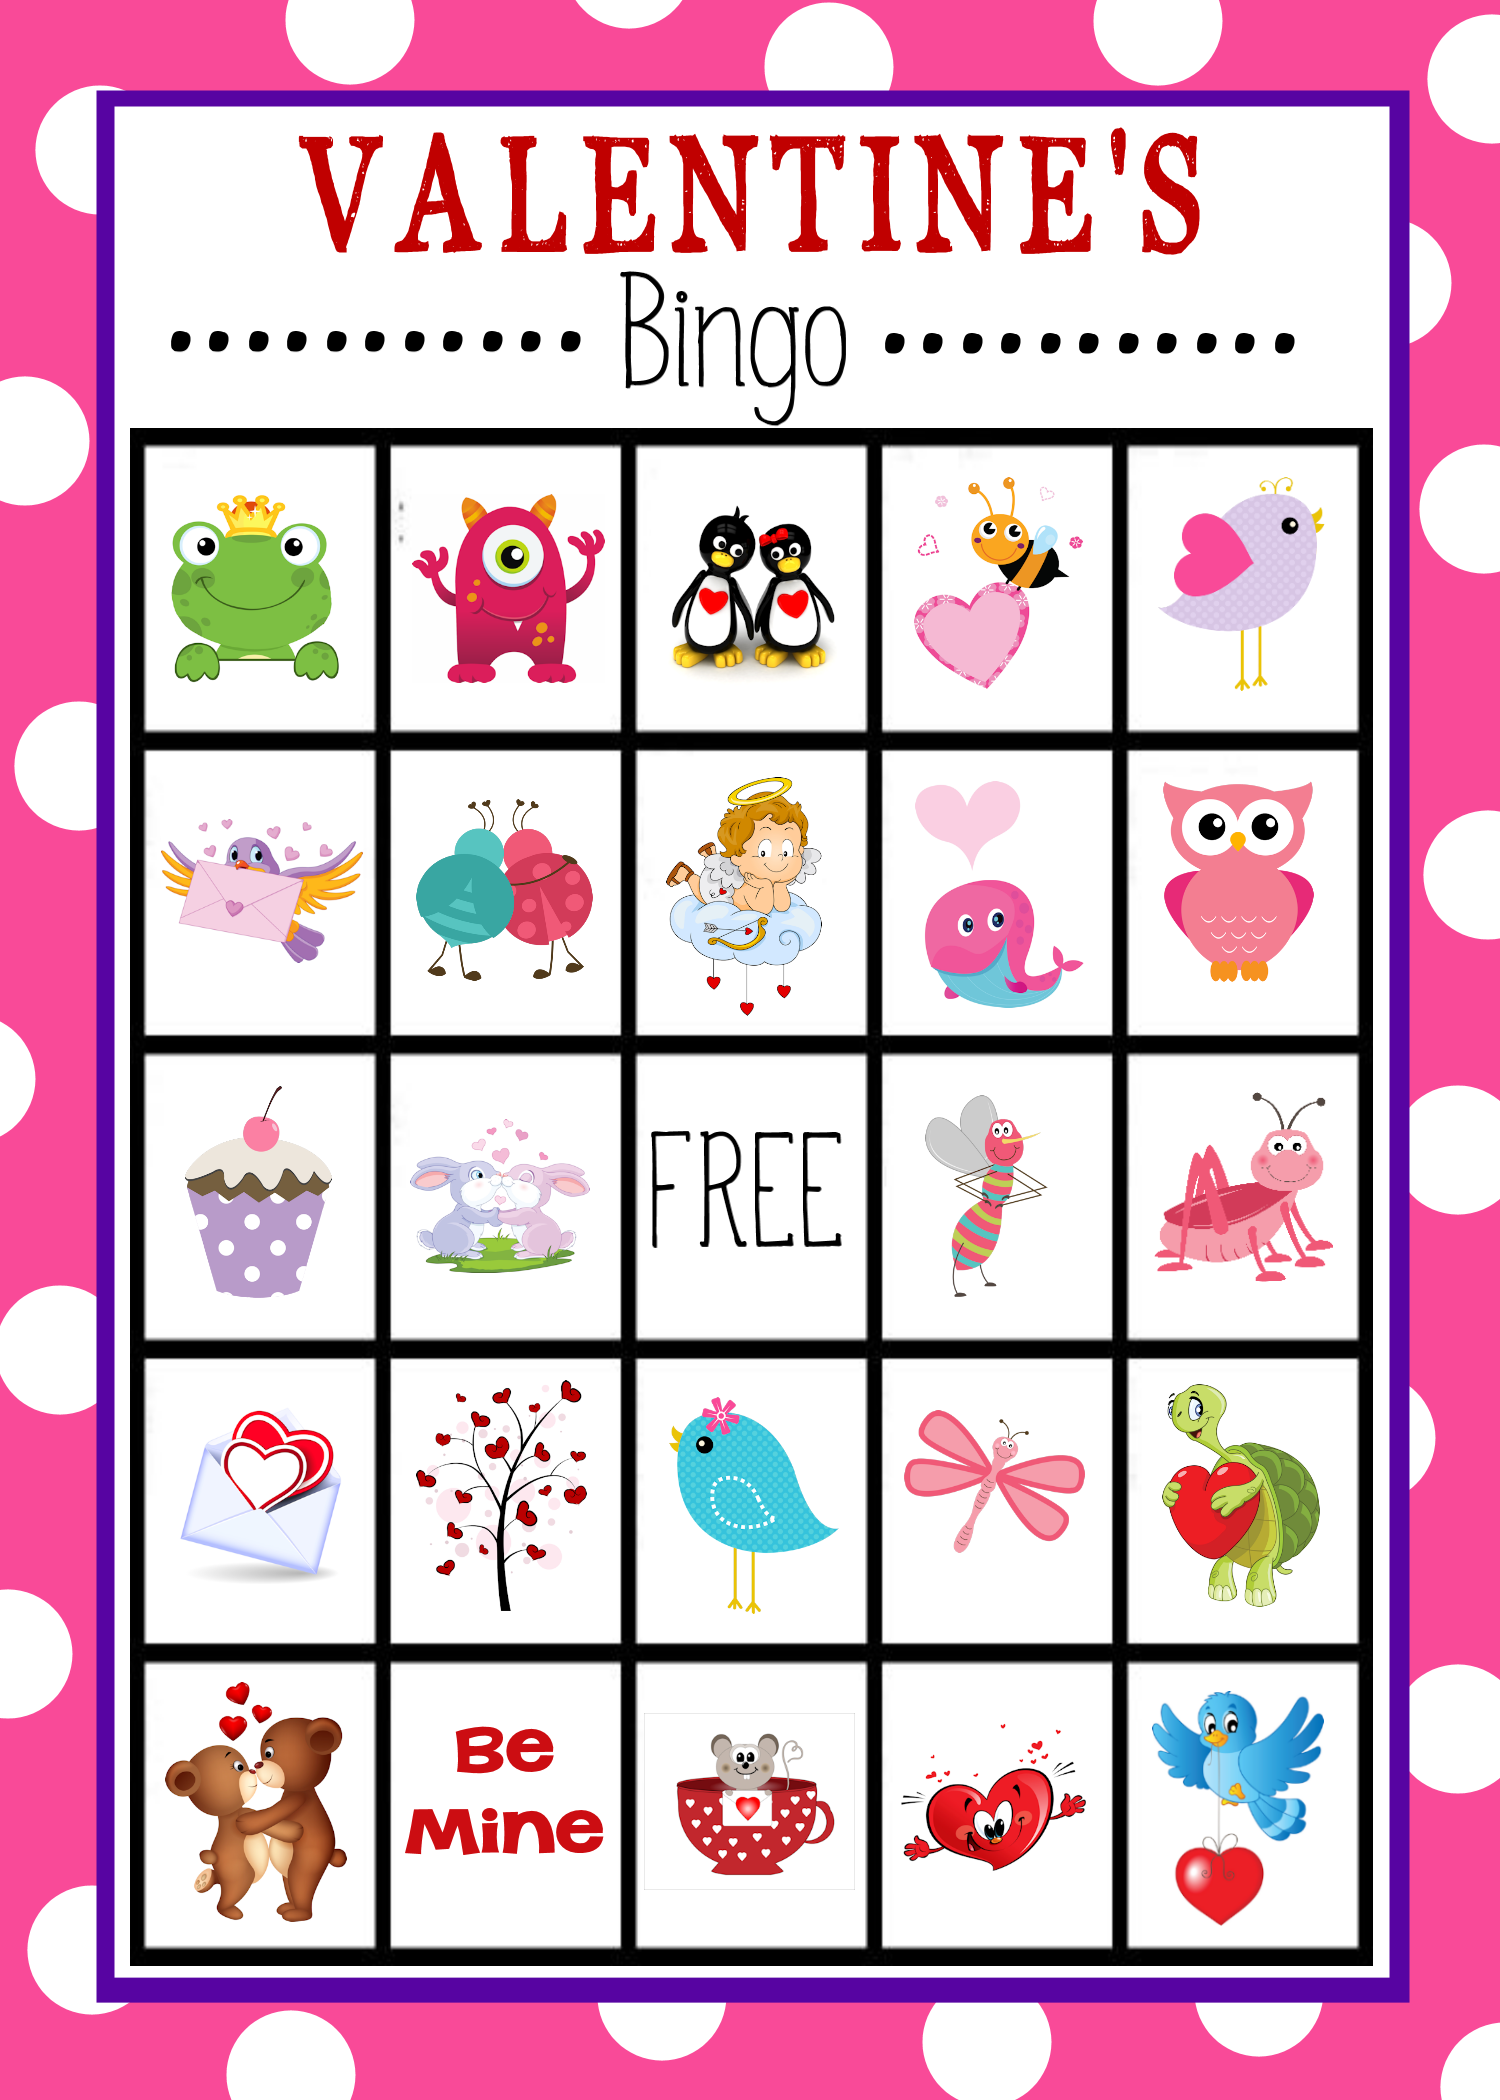 Nifty image intended for printable valentine bingo